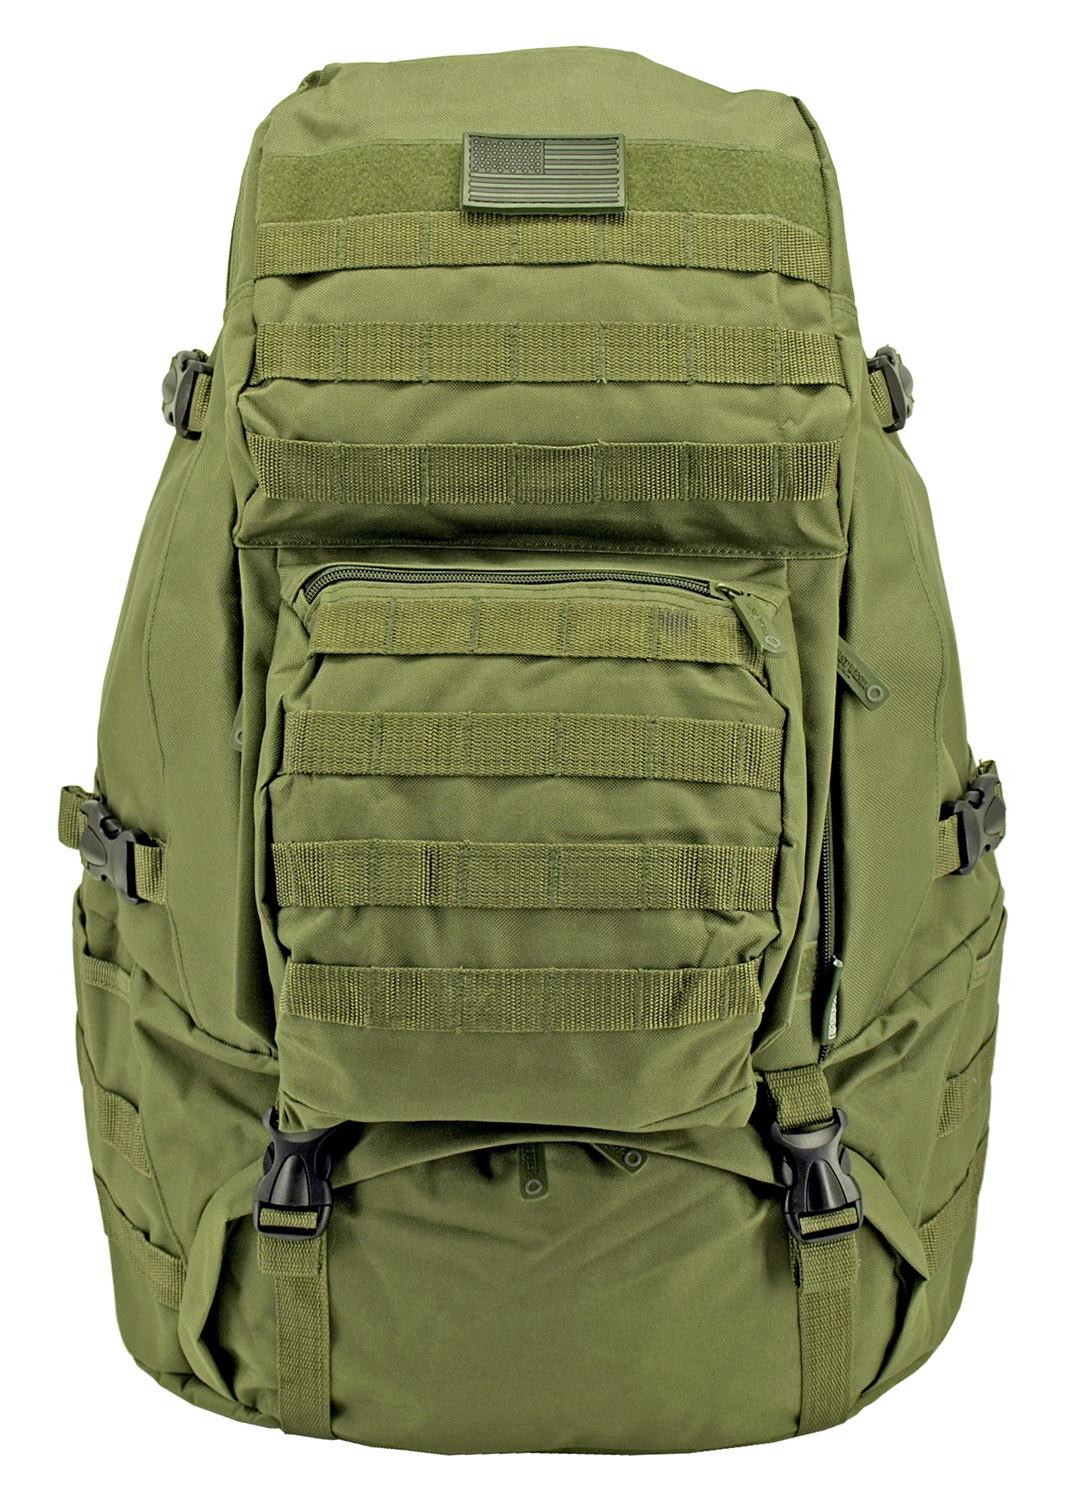 Large Tactical Readiness Pack - Olive Green